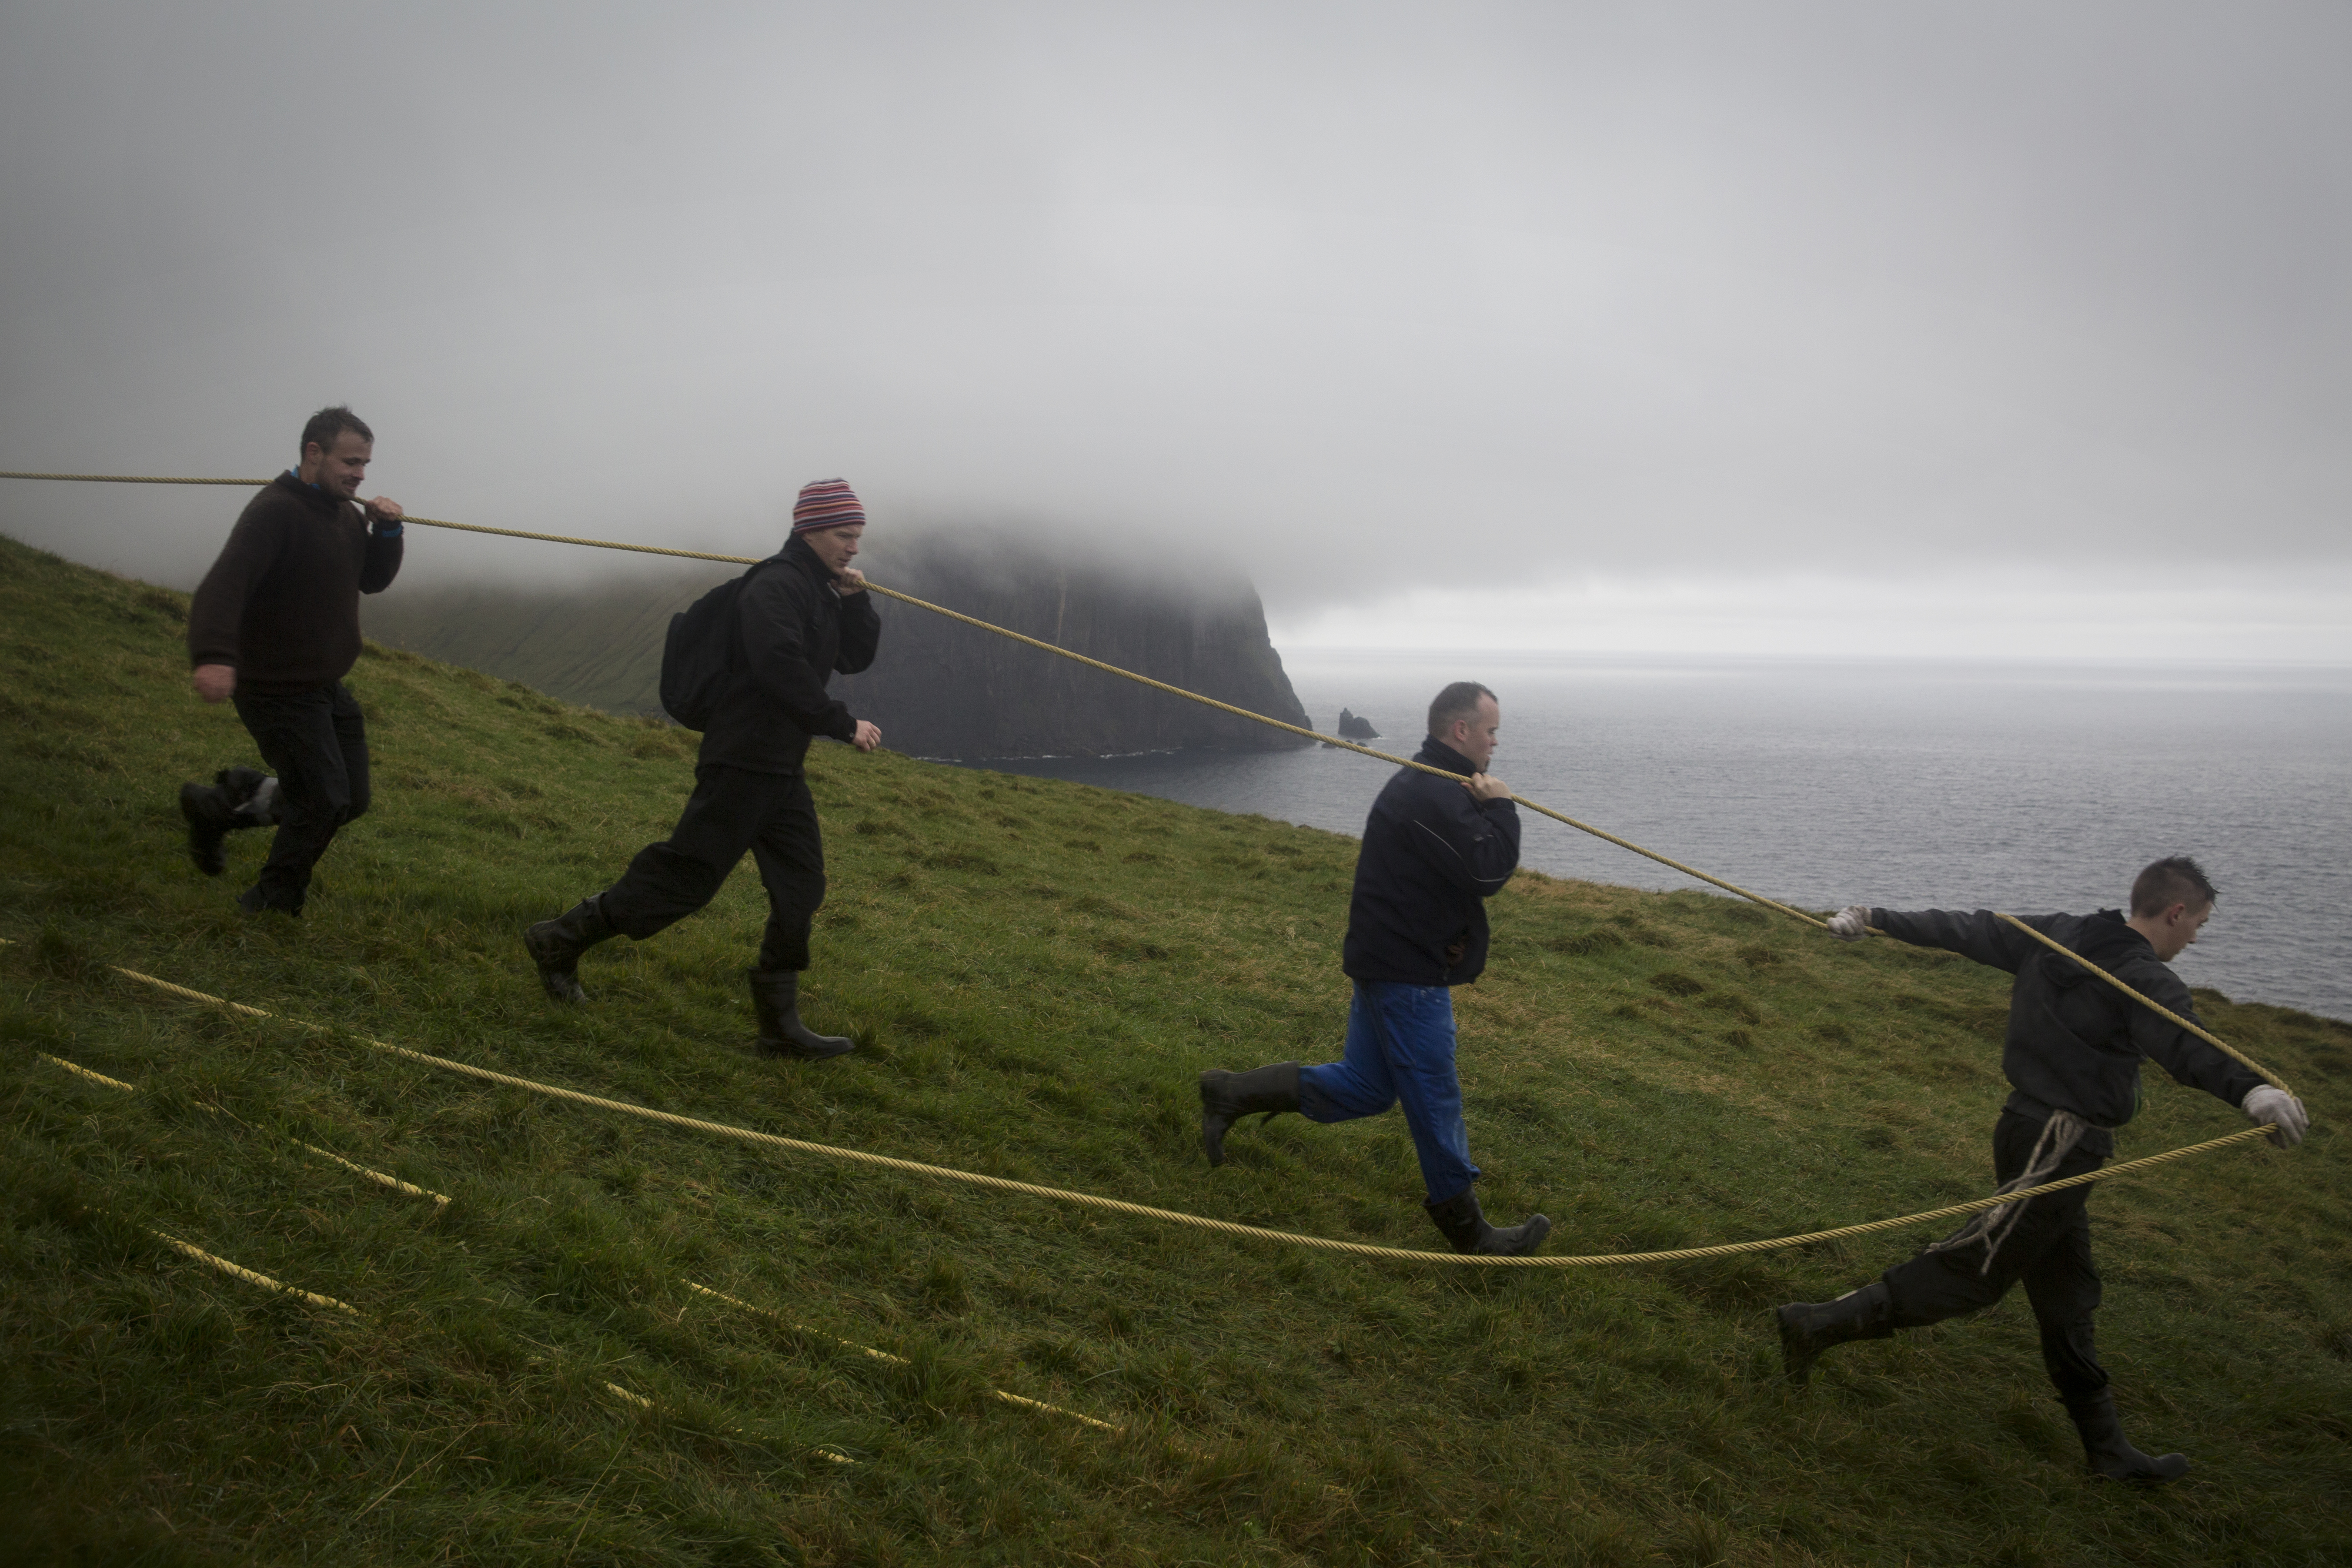 Shepherds use a rope to pull a cart across a cliff in Tjørnuvík, Faroe Islands, on September 20, 2014. At the end of every summer, residents of Tjørnuvík visit a remote island nearby to gather sheep for the annual slaughter.  Photo: Ed Ou. Reportage: Getty Images